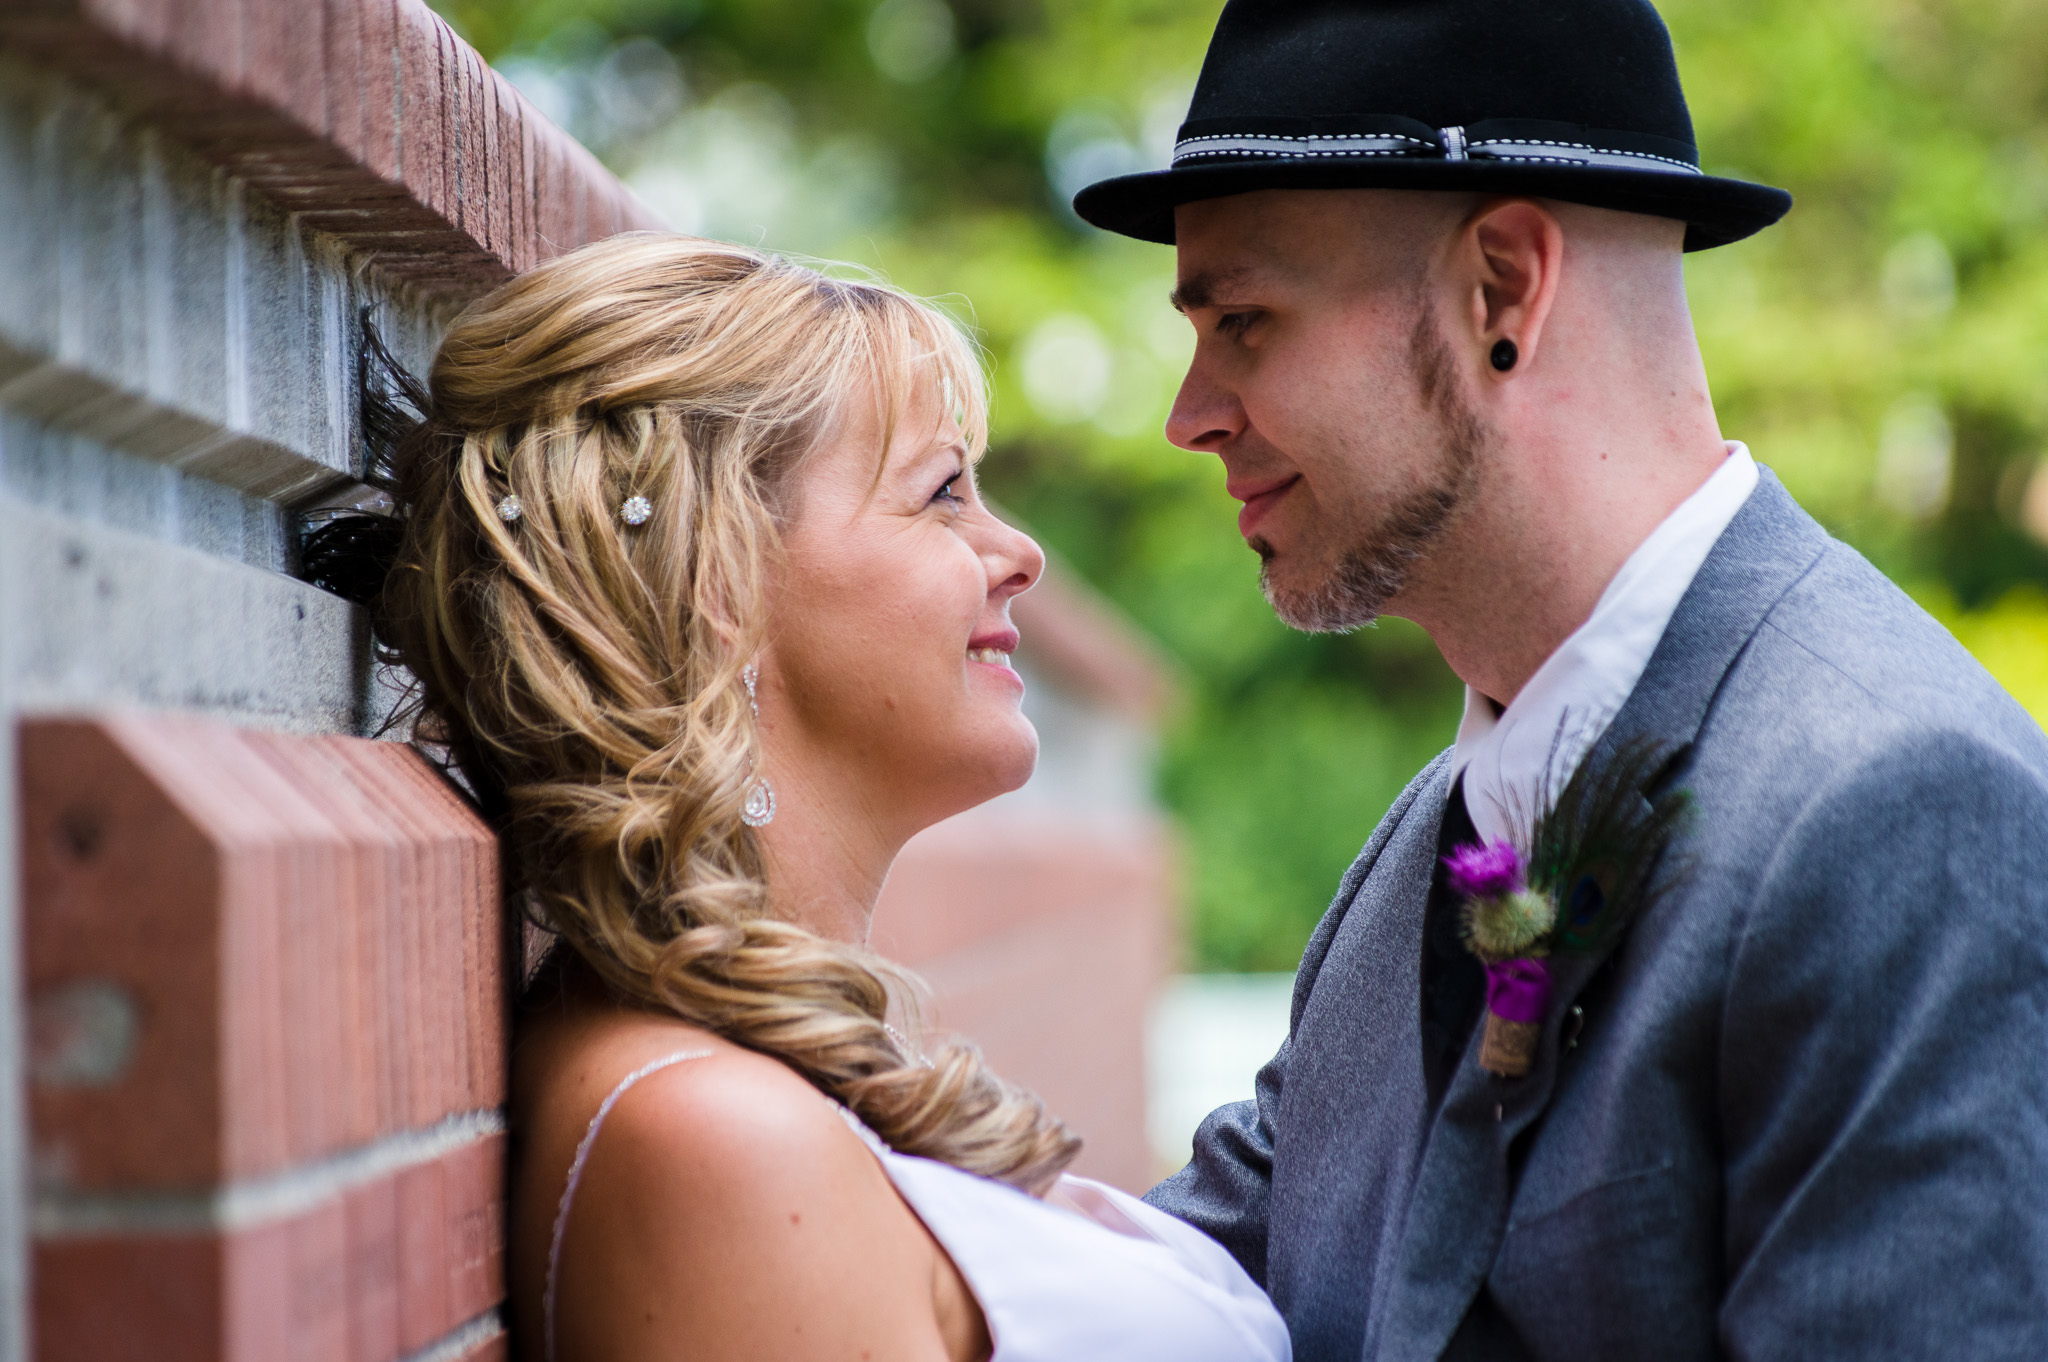 2015-06-13 - Amanda Tracey and Adam Johnson's wedding - Photography by Bailward Wedding Photography